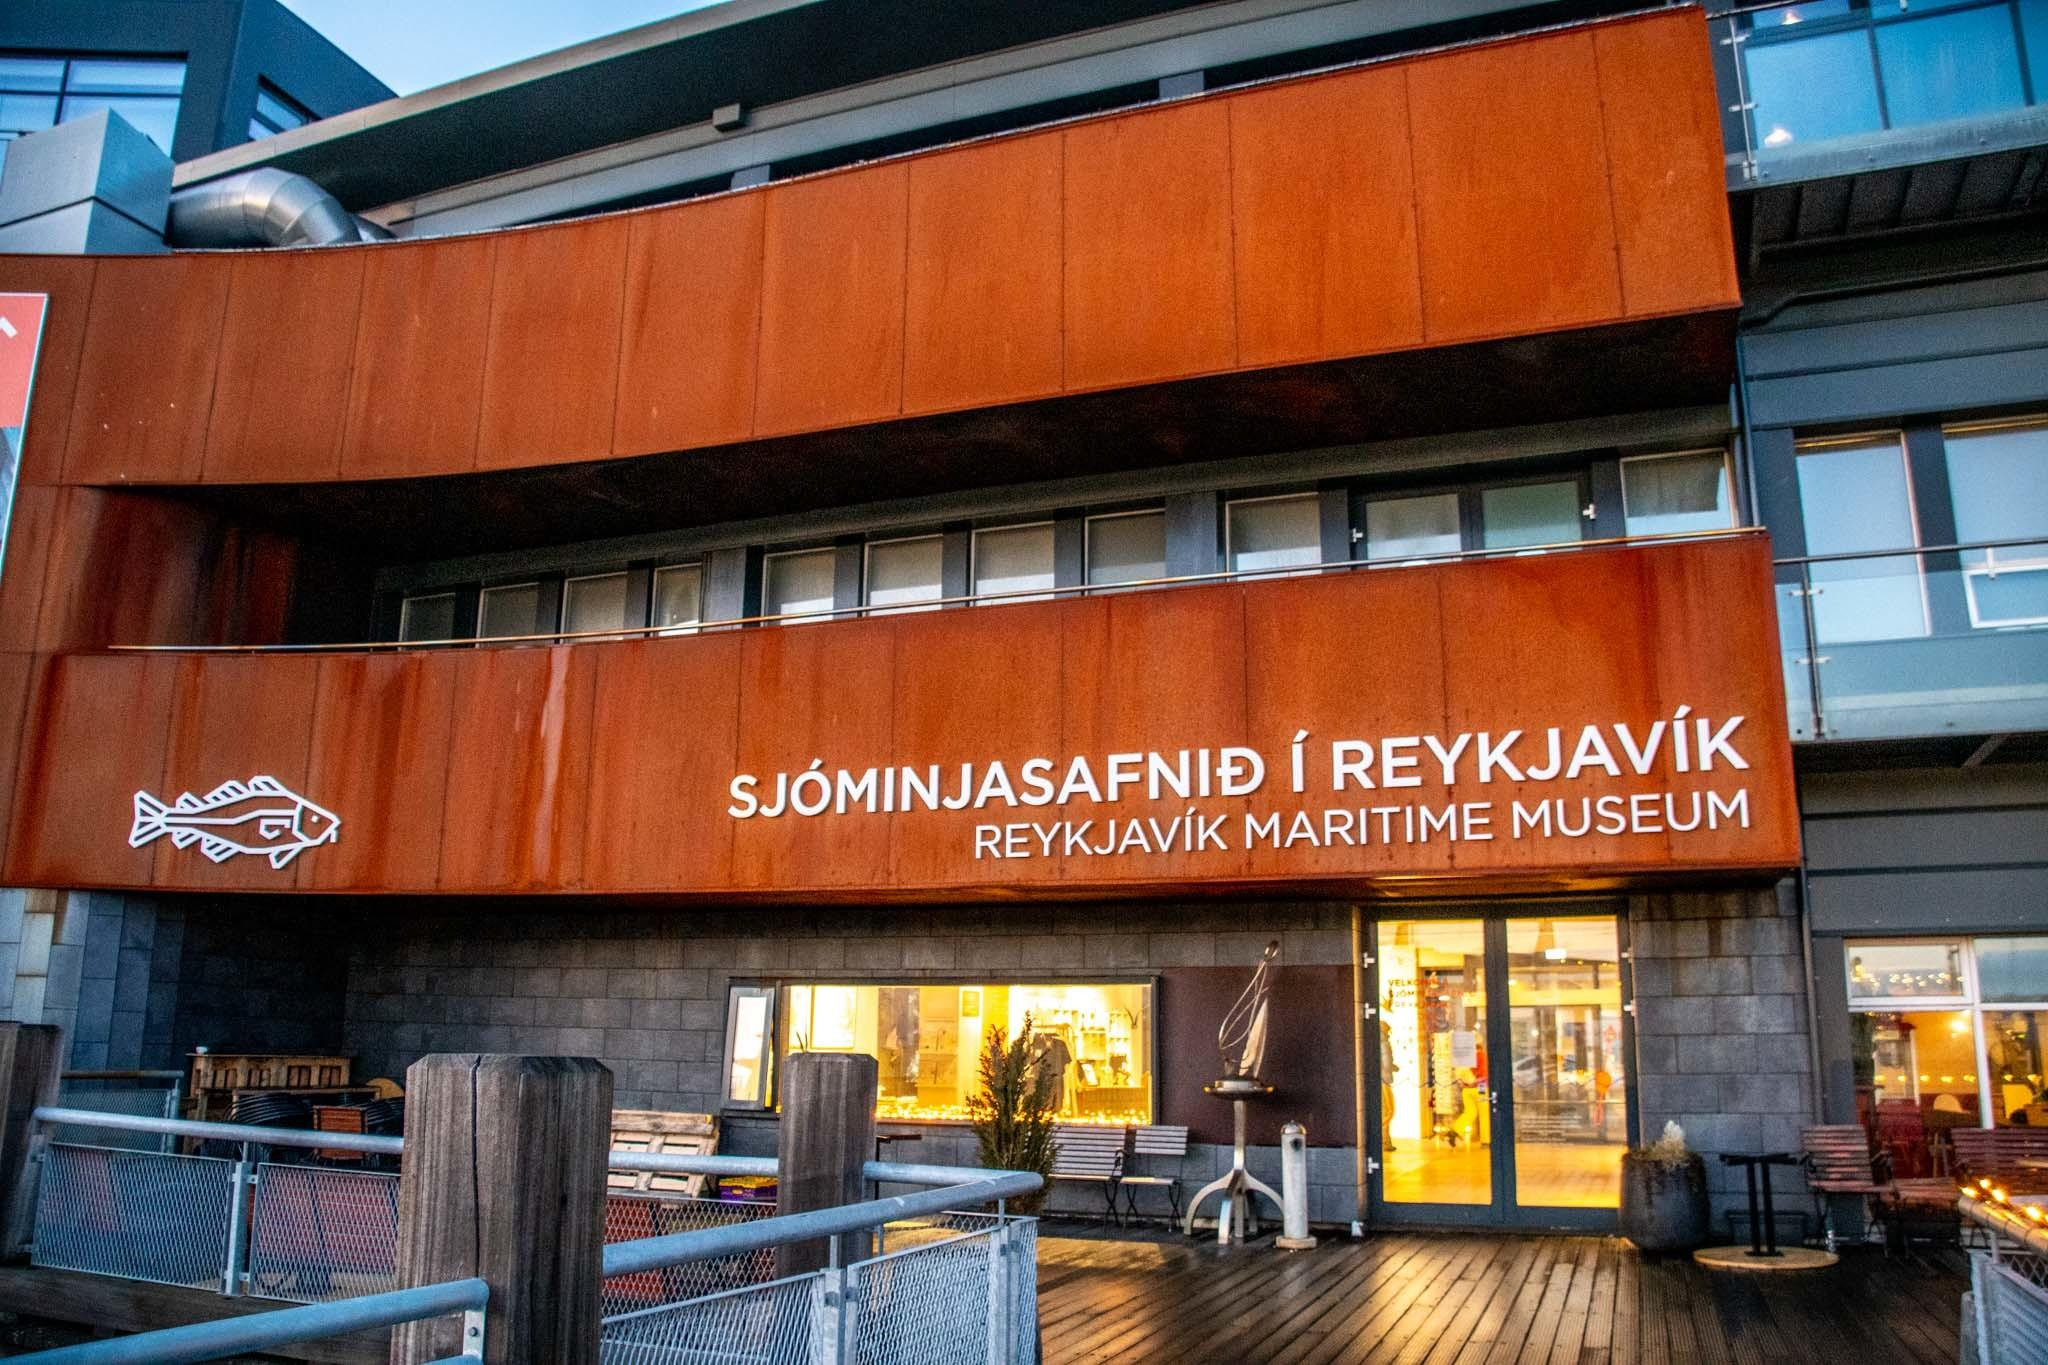 Reykjavik Maritime Museum in the harbor area.